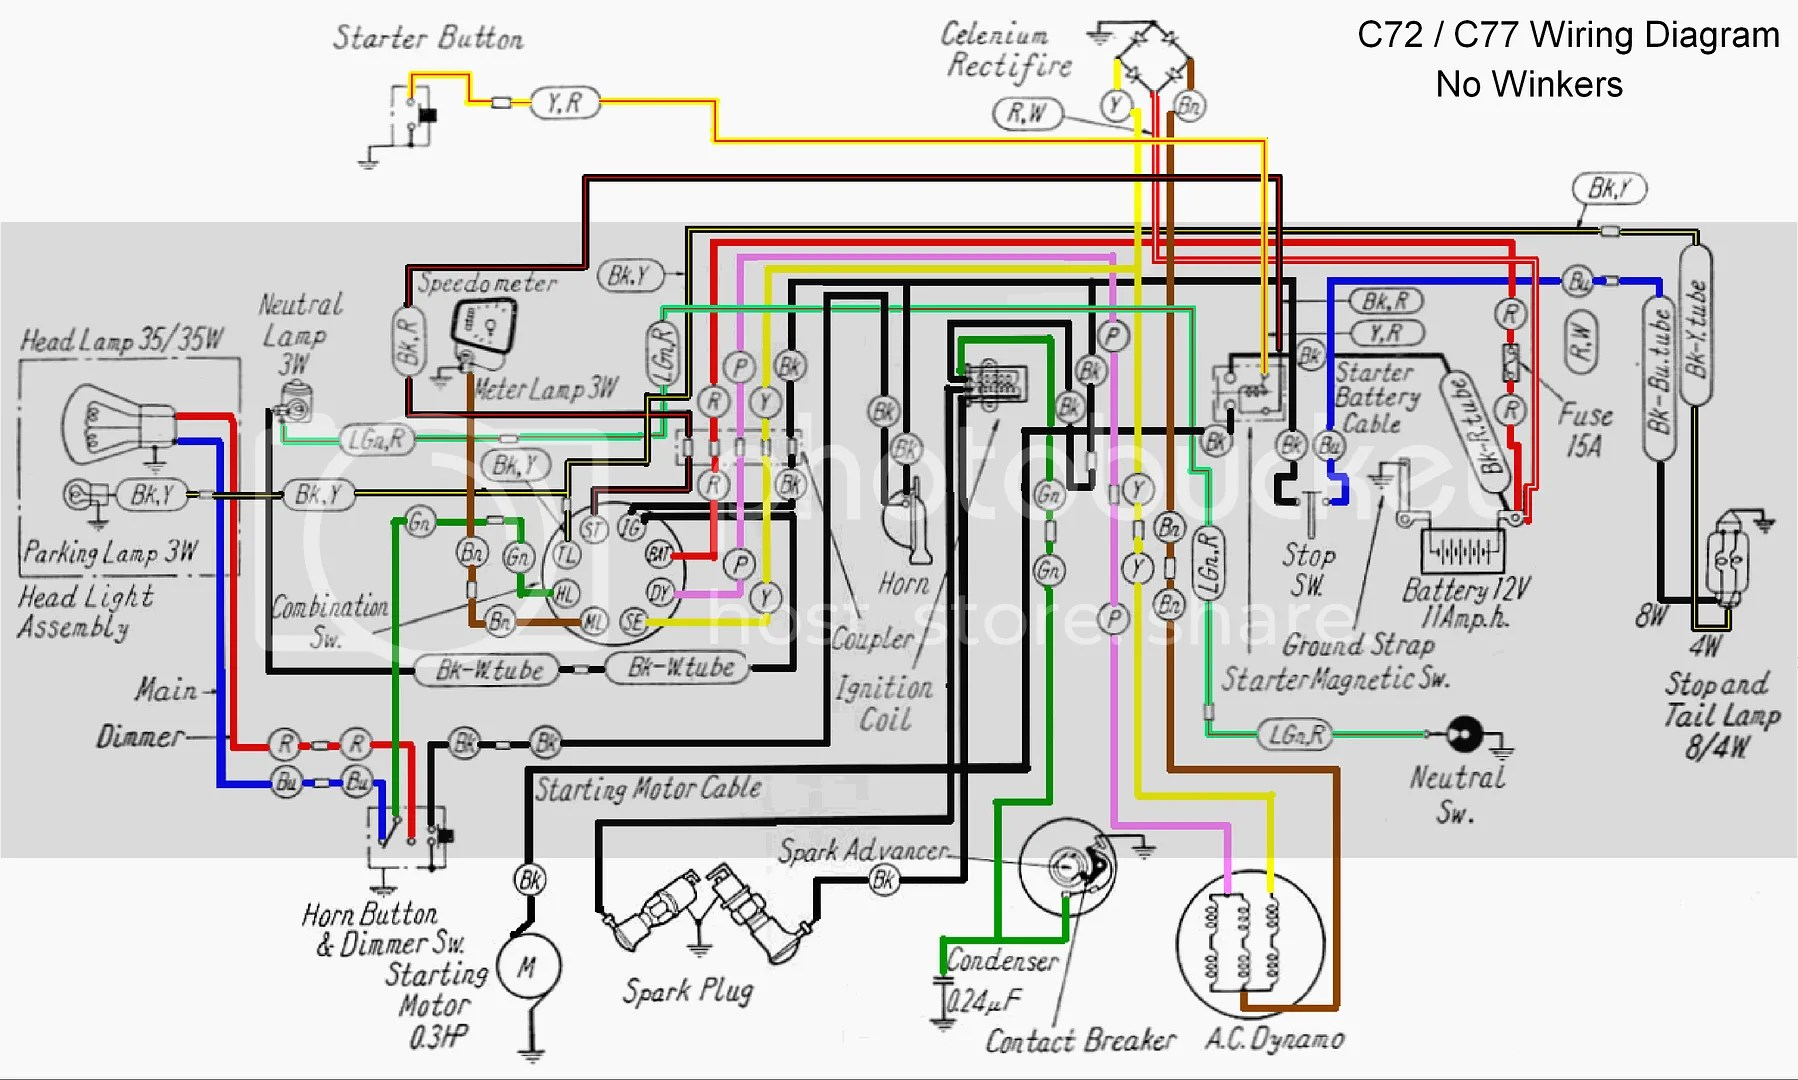 small resolution of honda305 com forum view topic ca77 wiring diagram with andi was goofing off at work one